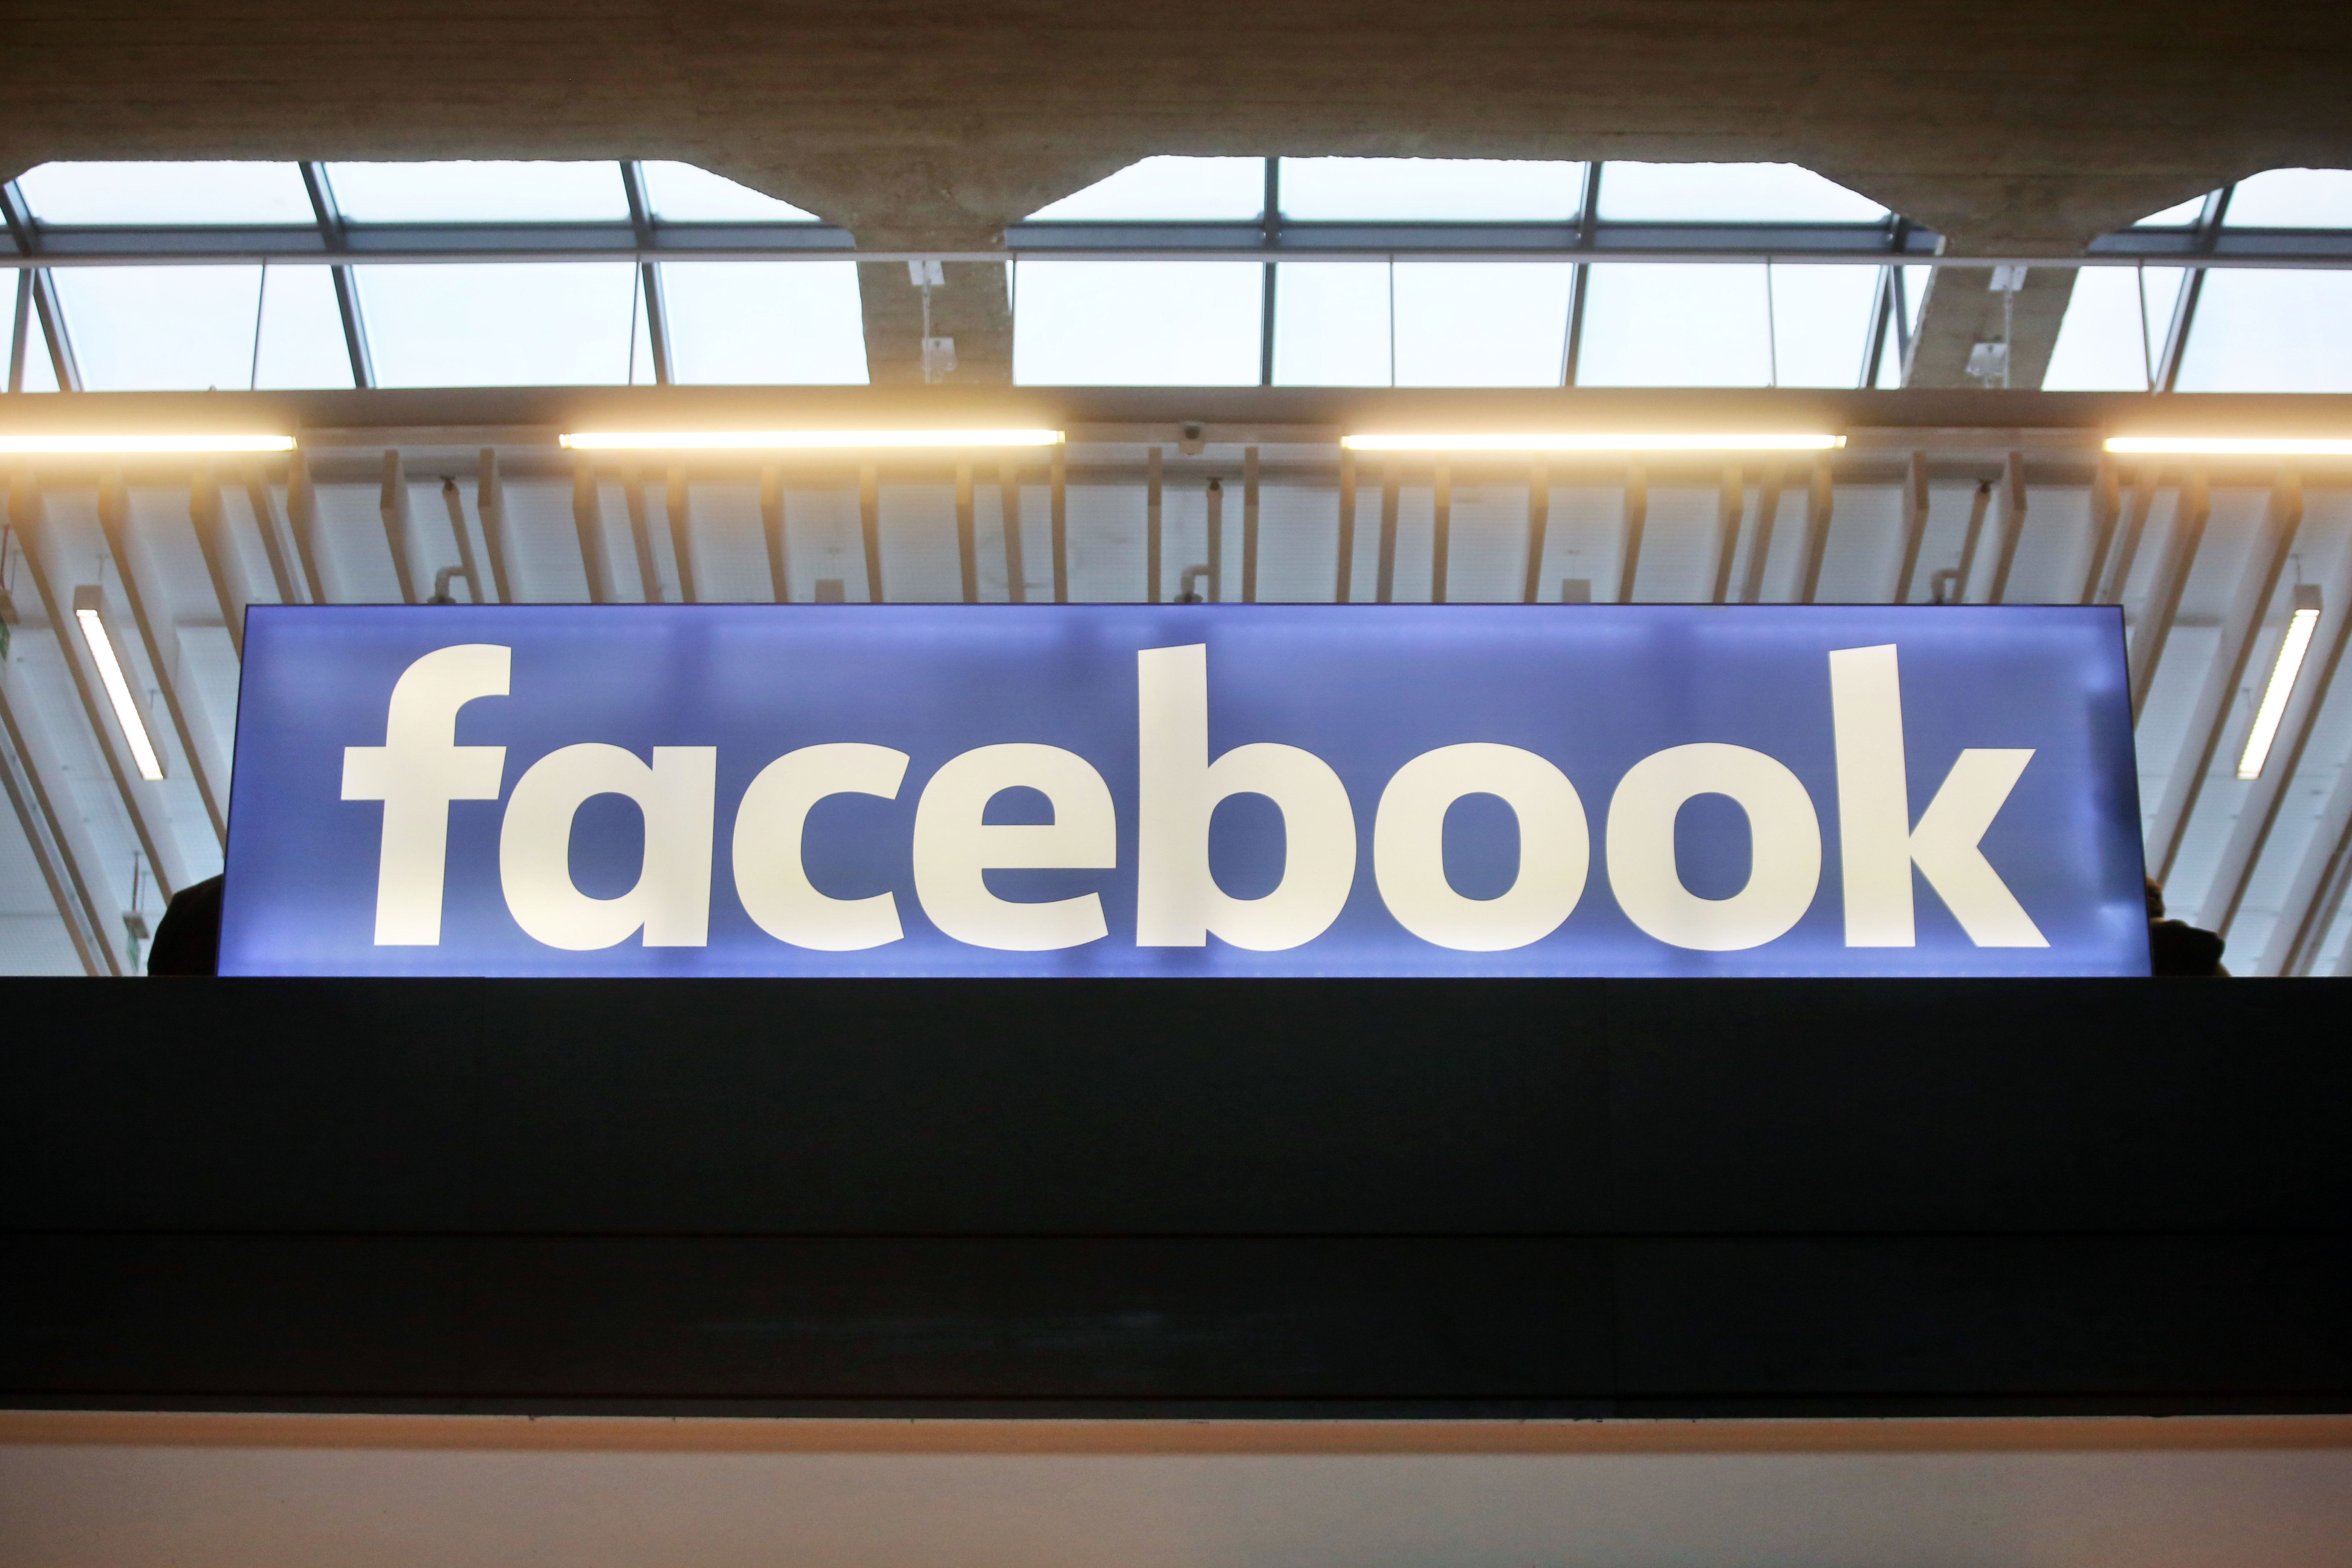 Facebook logo is displayed in a start-up companies gathering at Paris' Station F, in Paris, Tuesday, Jan. 17, 2017. (AP Photo/Thibault Camus)